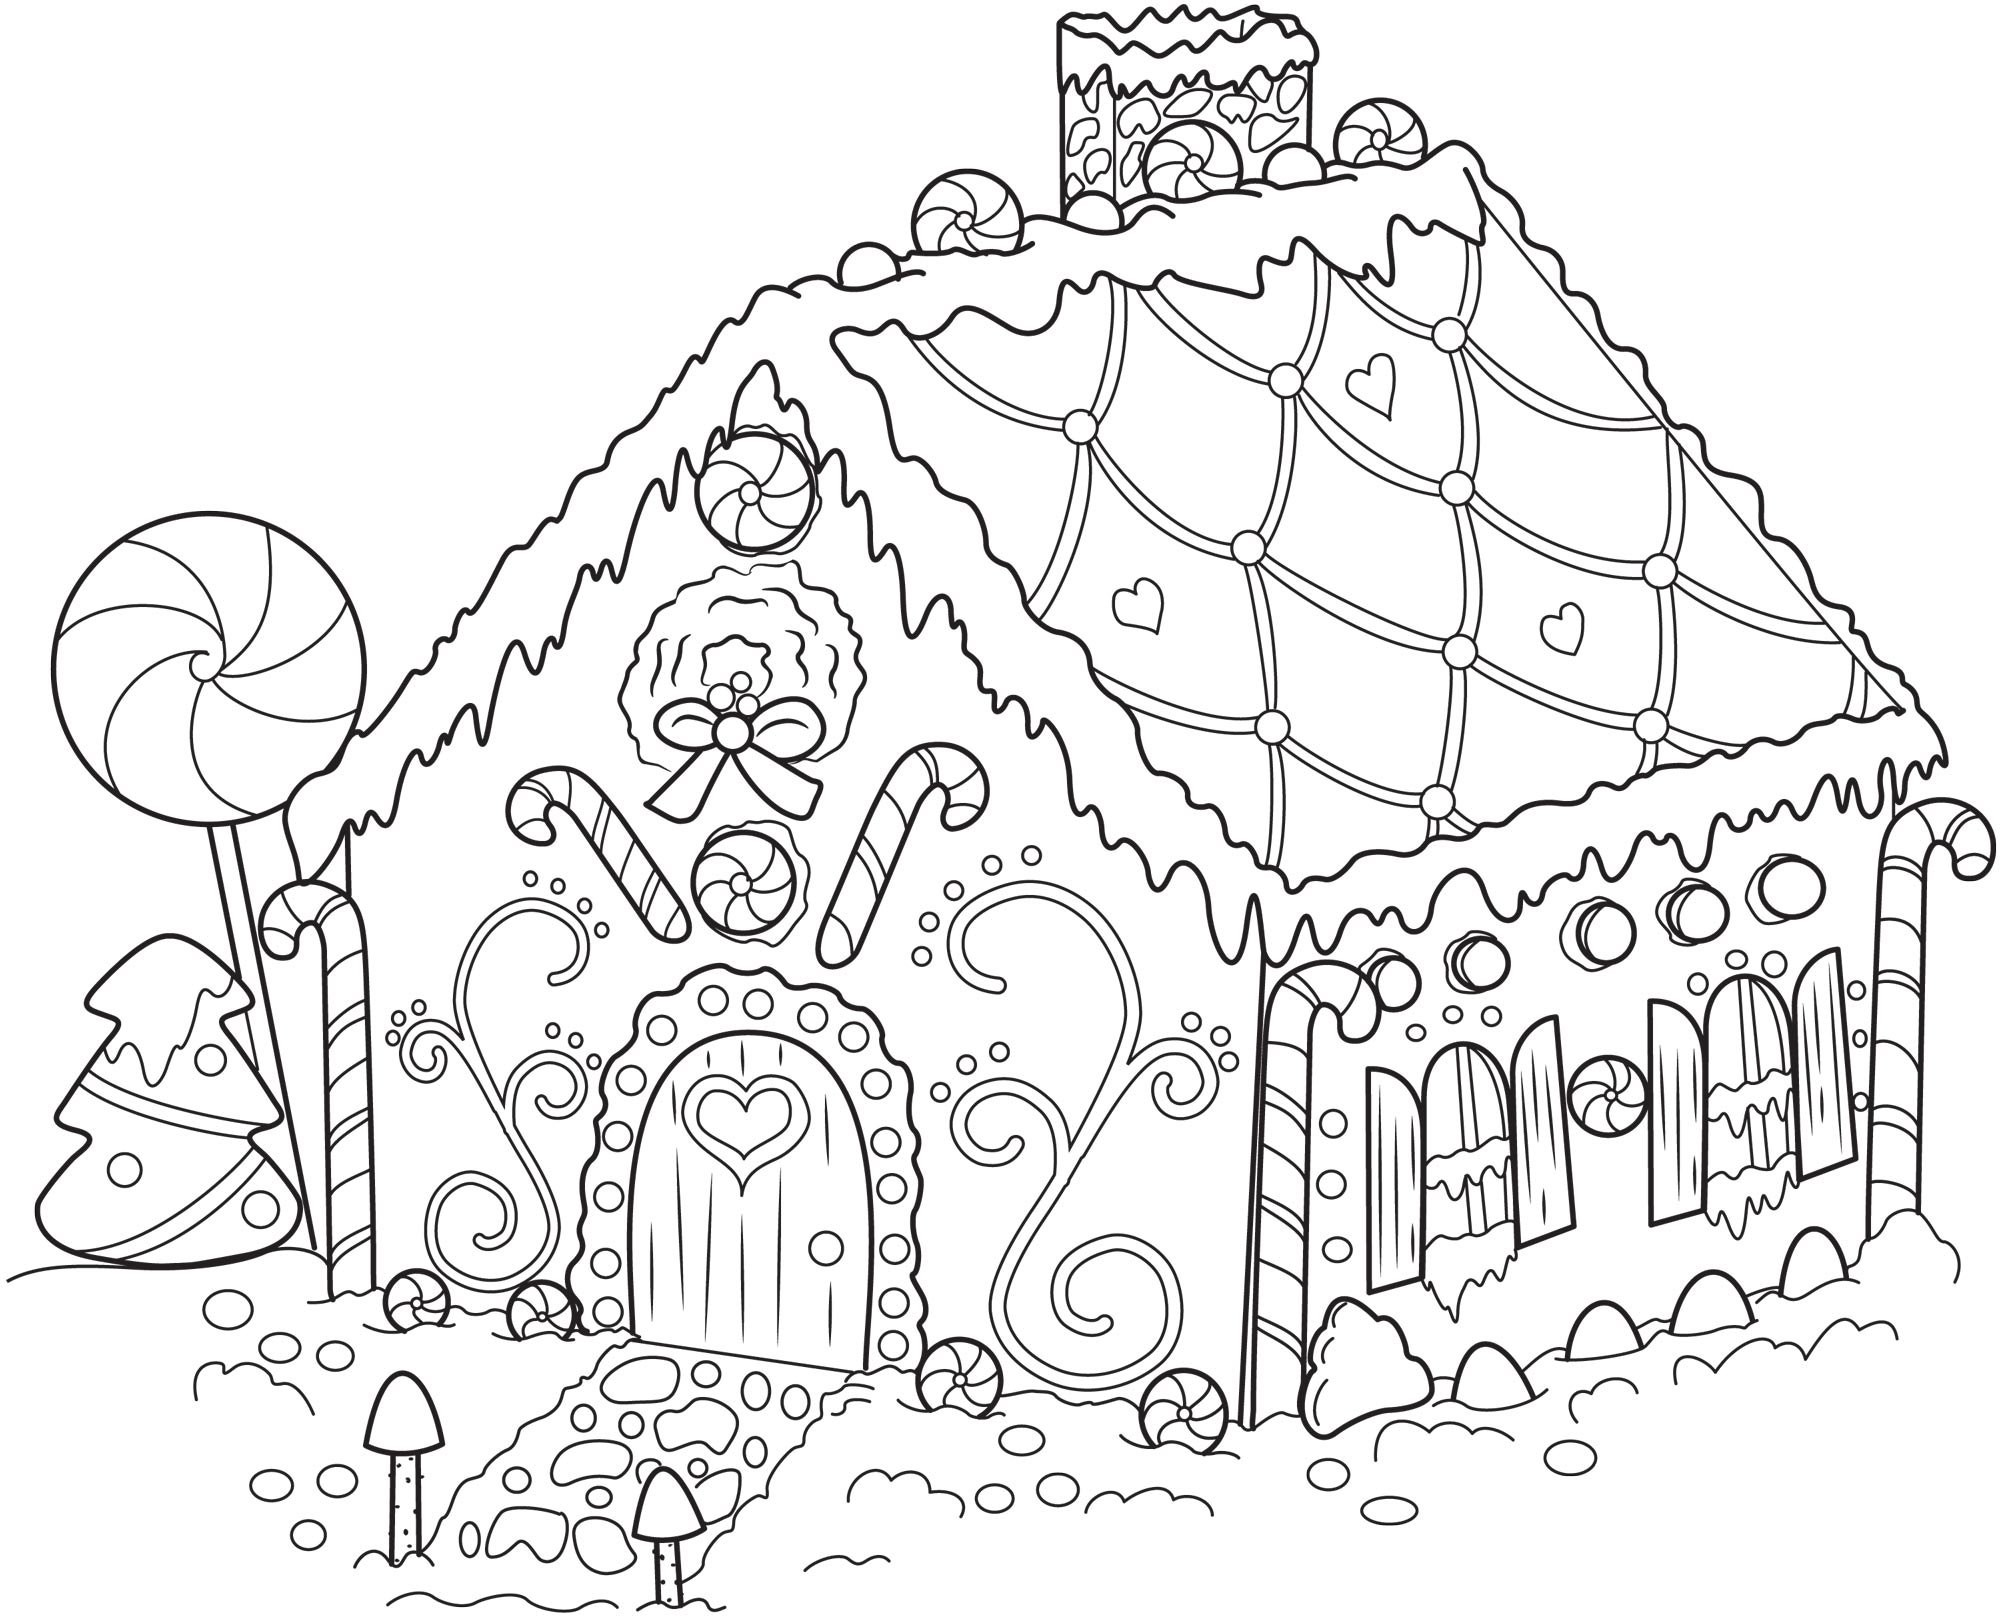 Christmas Coloring Pages That Are Hard With For Adults Printable And Connect Me